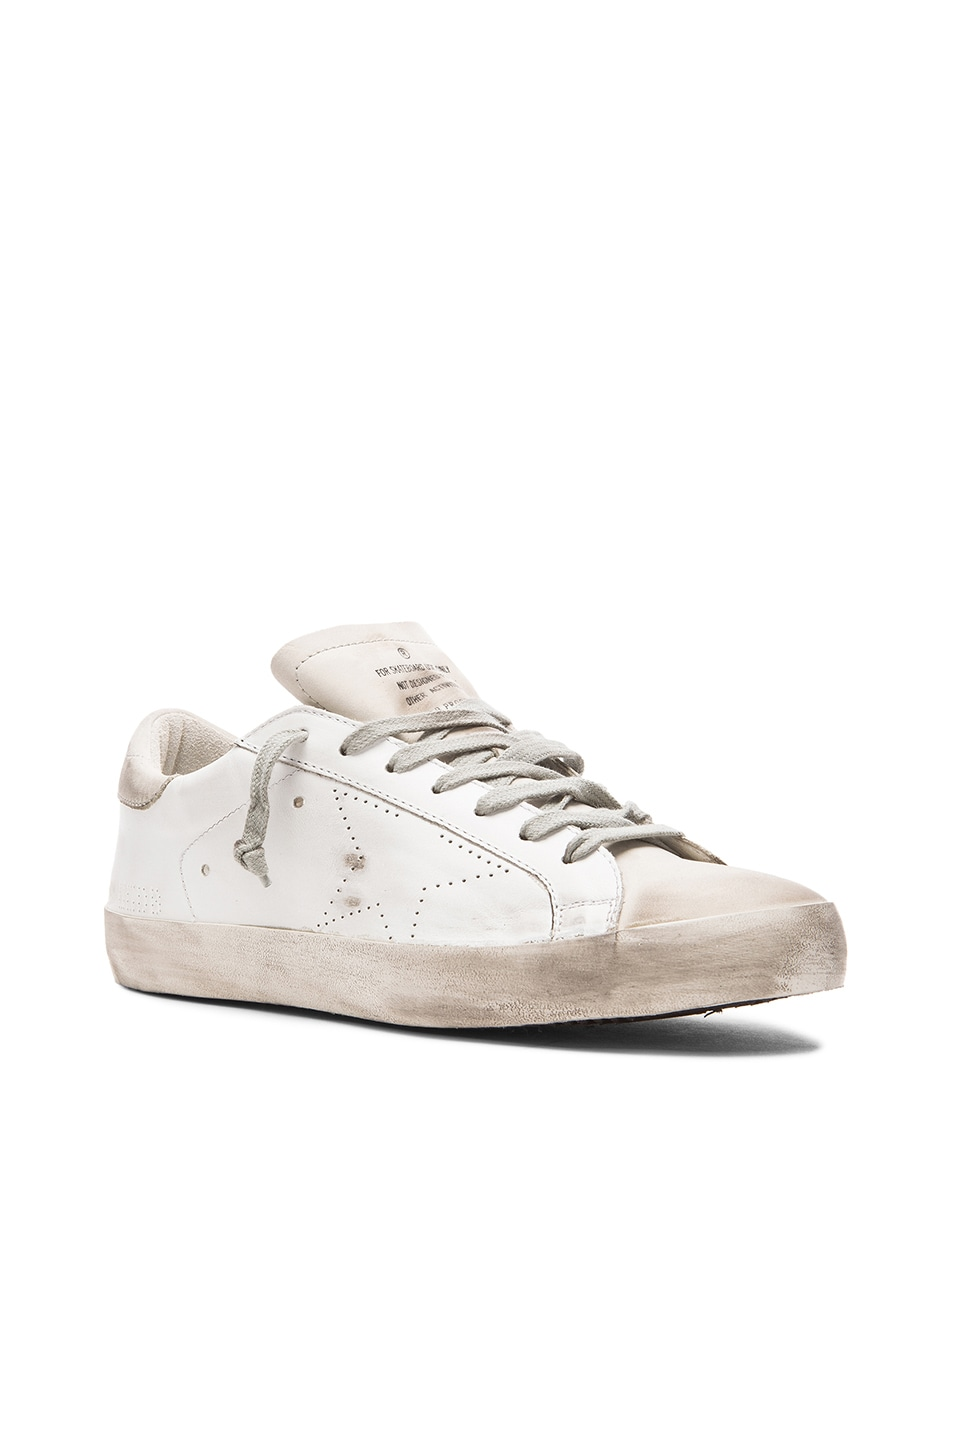 Image 1 of Golden Goose Superstar Sneakers in White